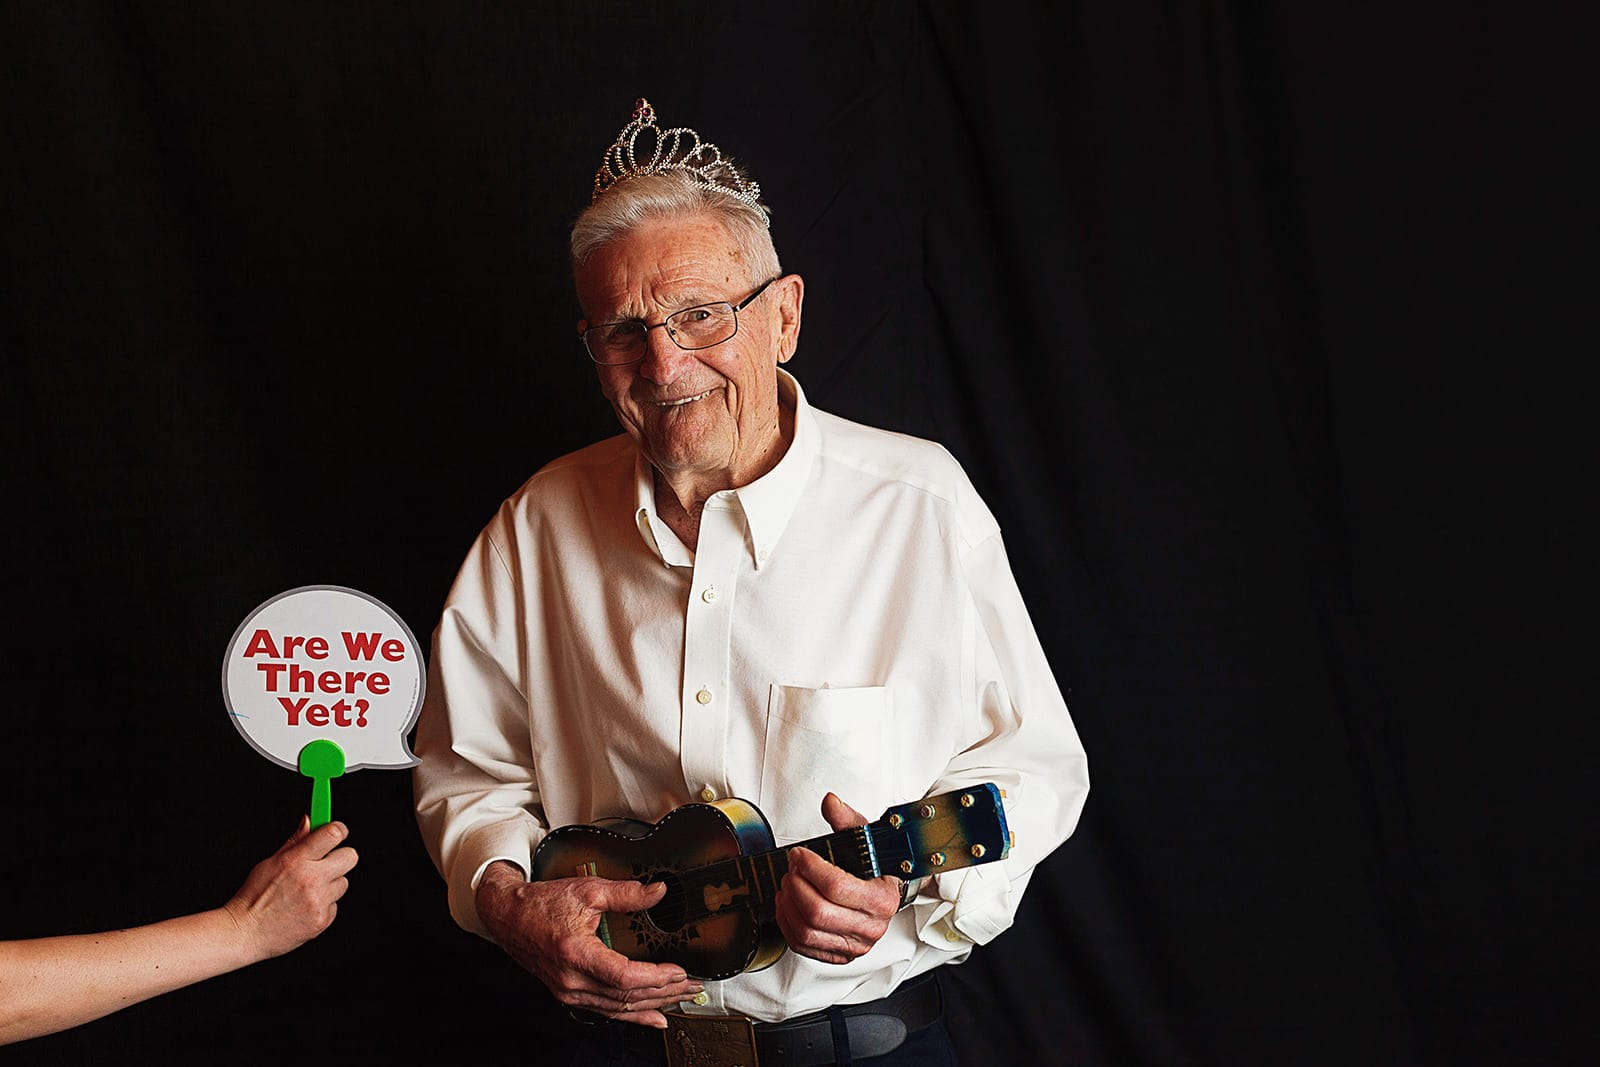 Bride's grandfather wears a tiara and hold a tiny guitar for the wedding photo booth